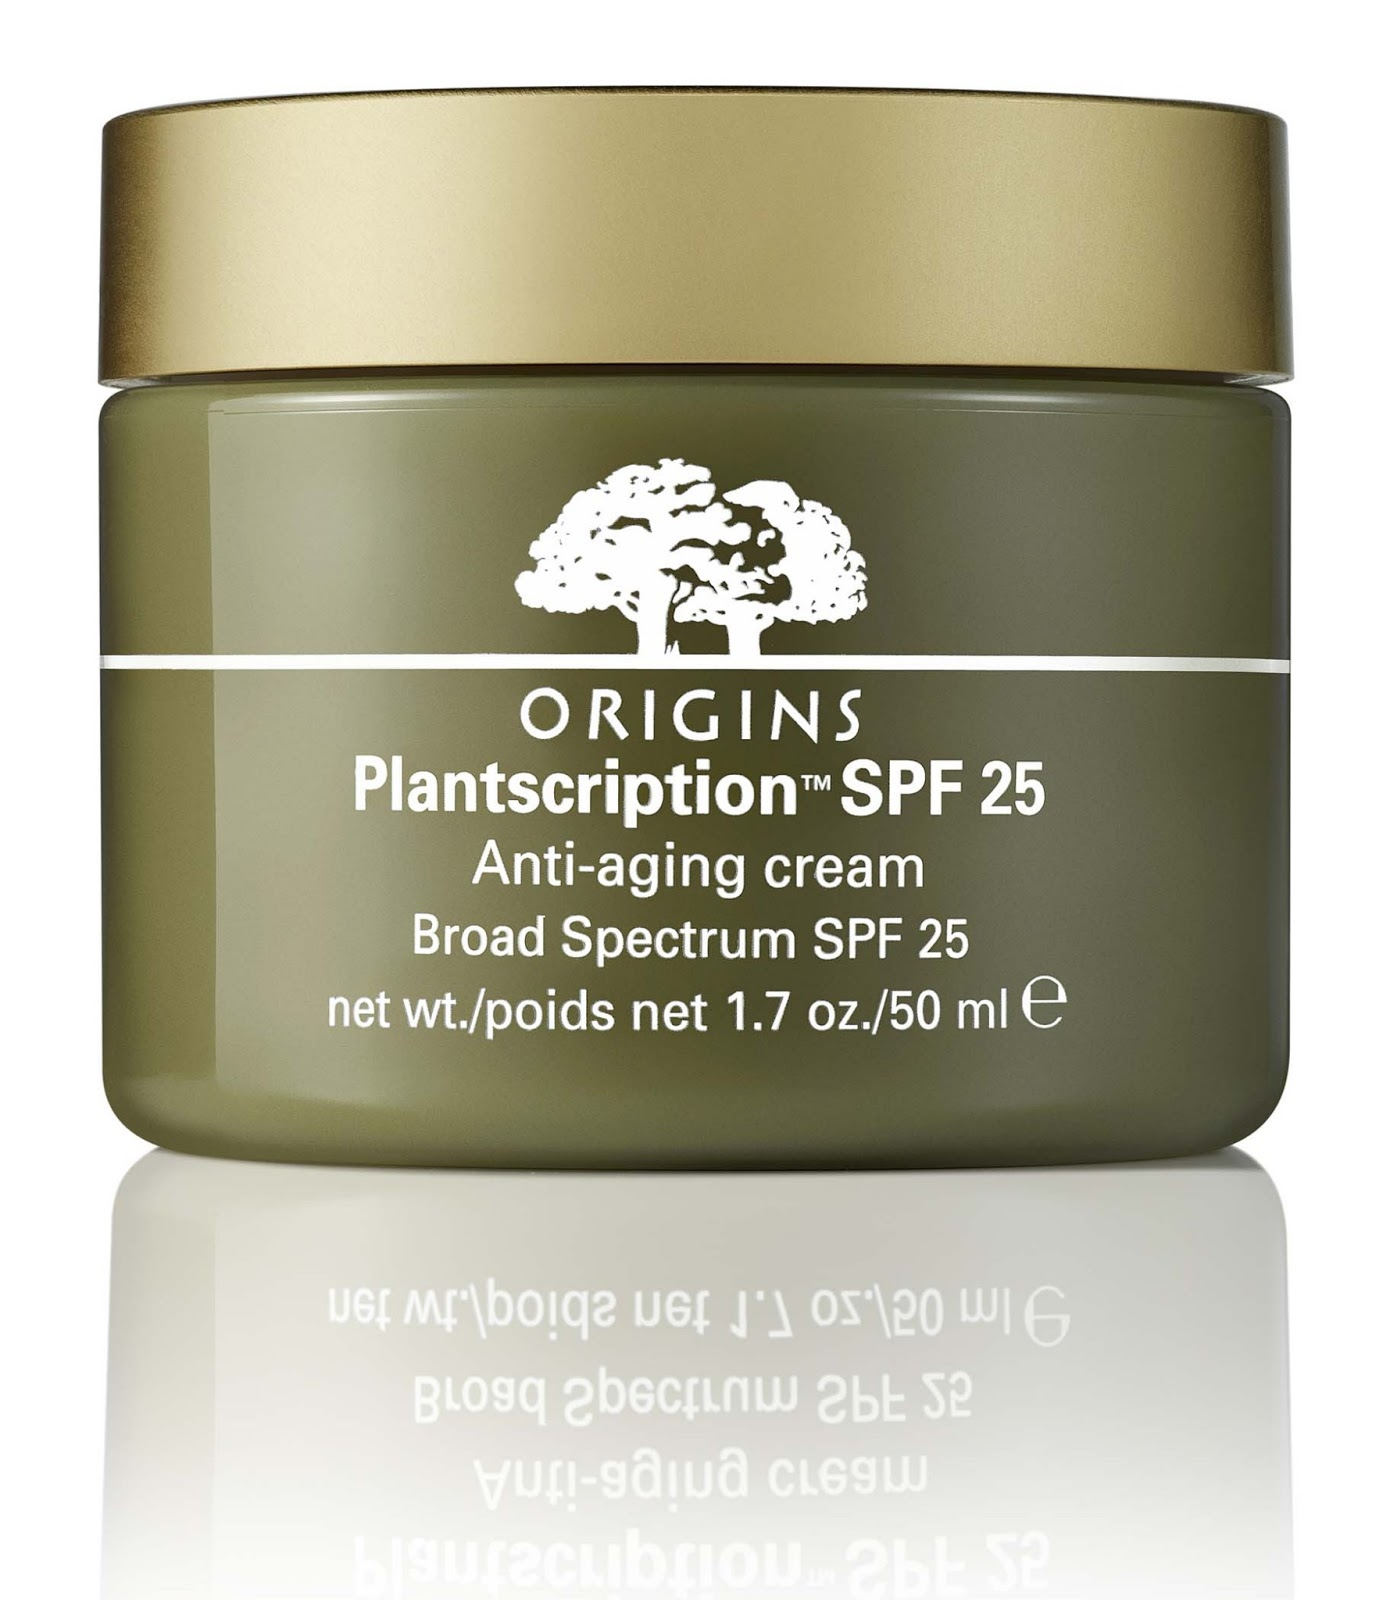 Plantscription SPF 25 Anti-aging Cream. Ideal para tu piel.